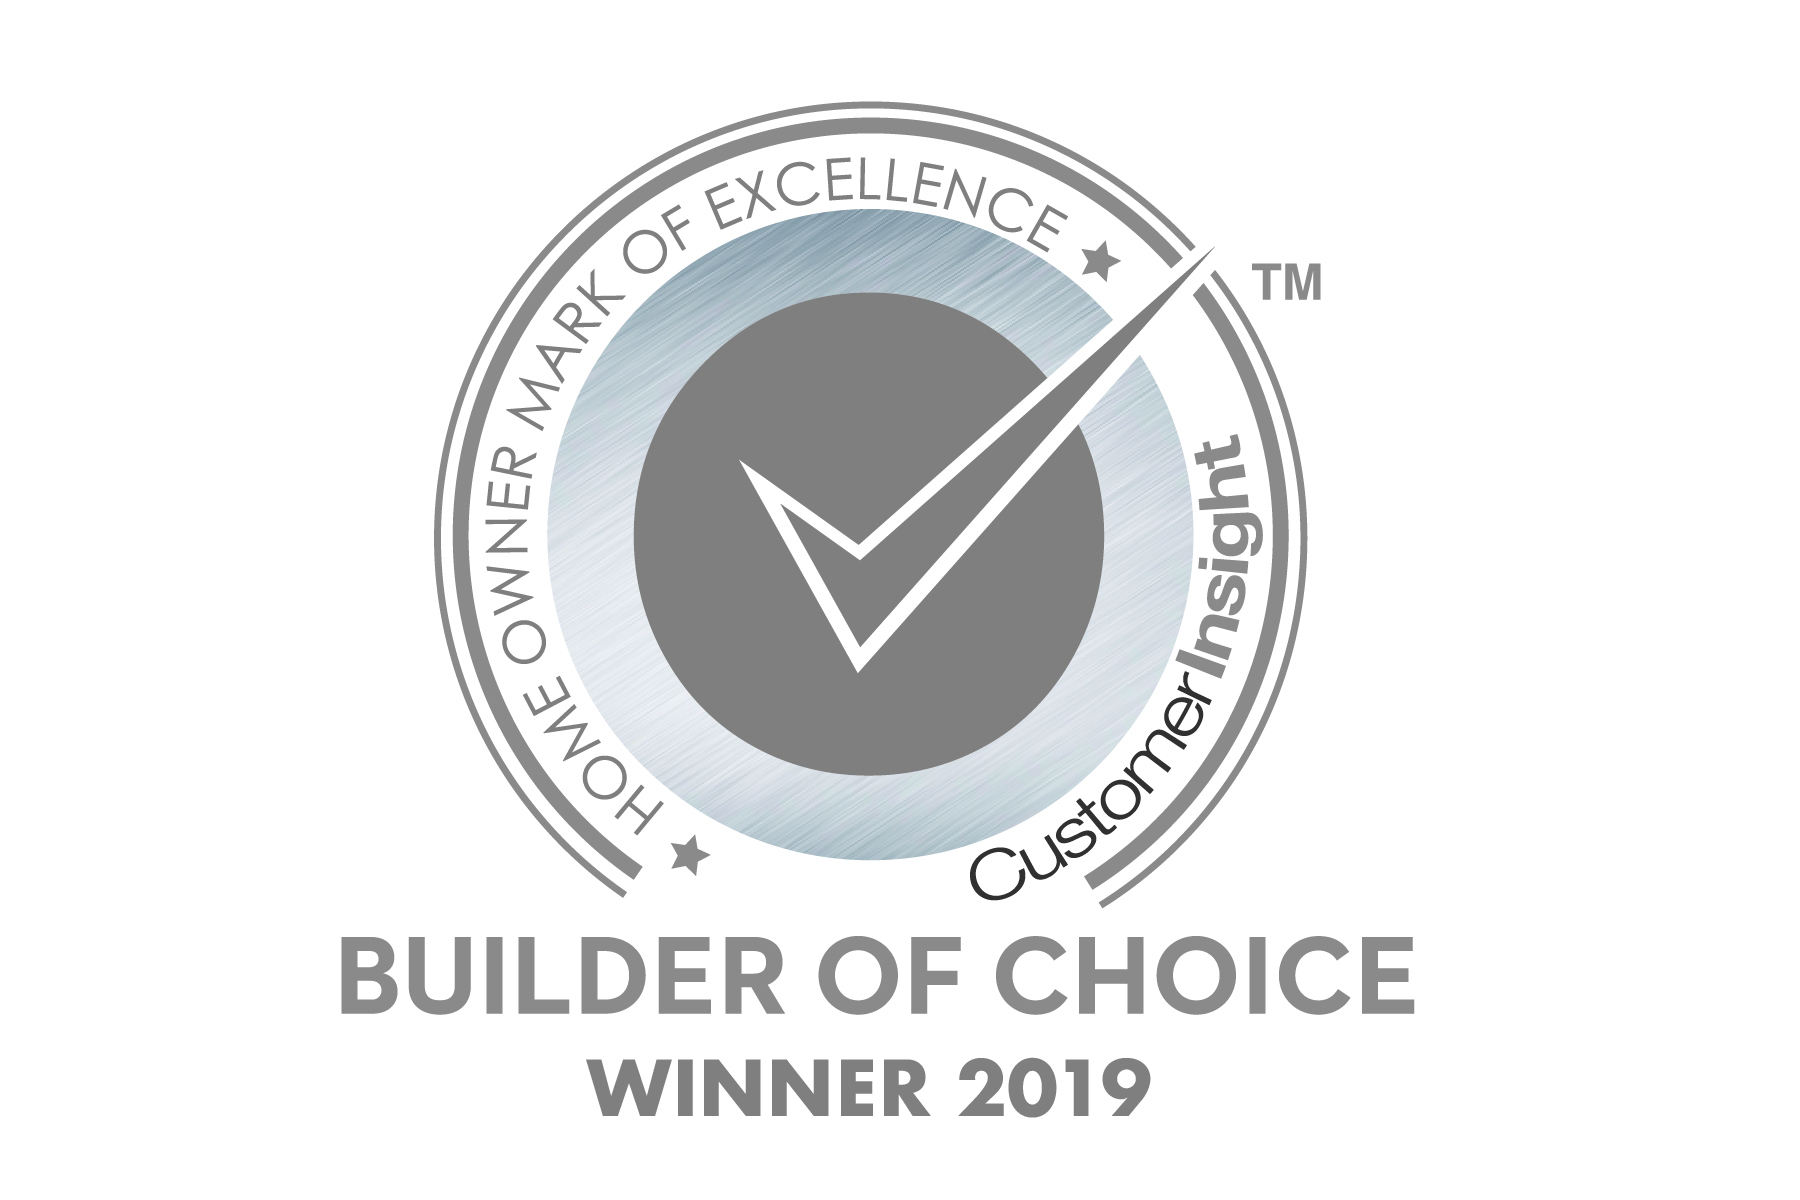 2019 Customer Insight H.O.M.E. Builder of Choice Award